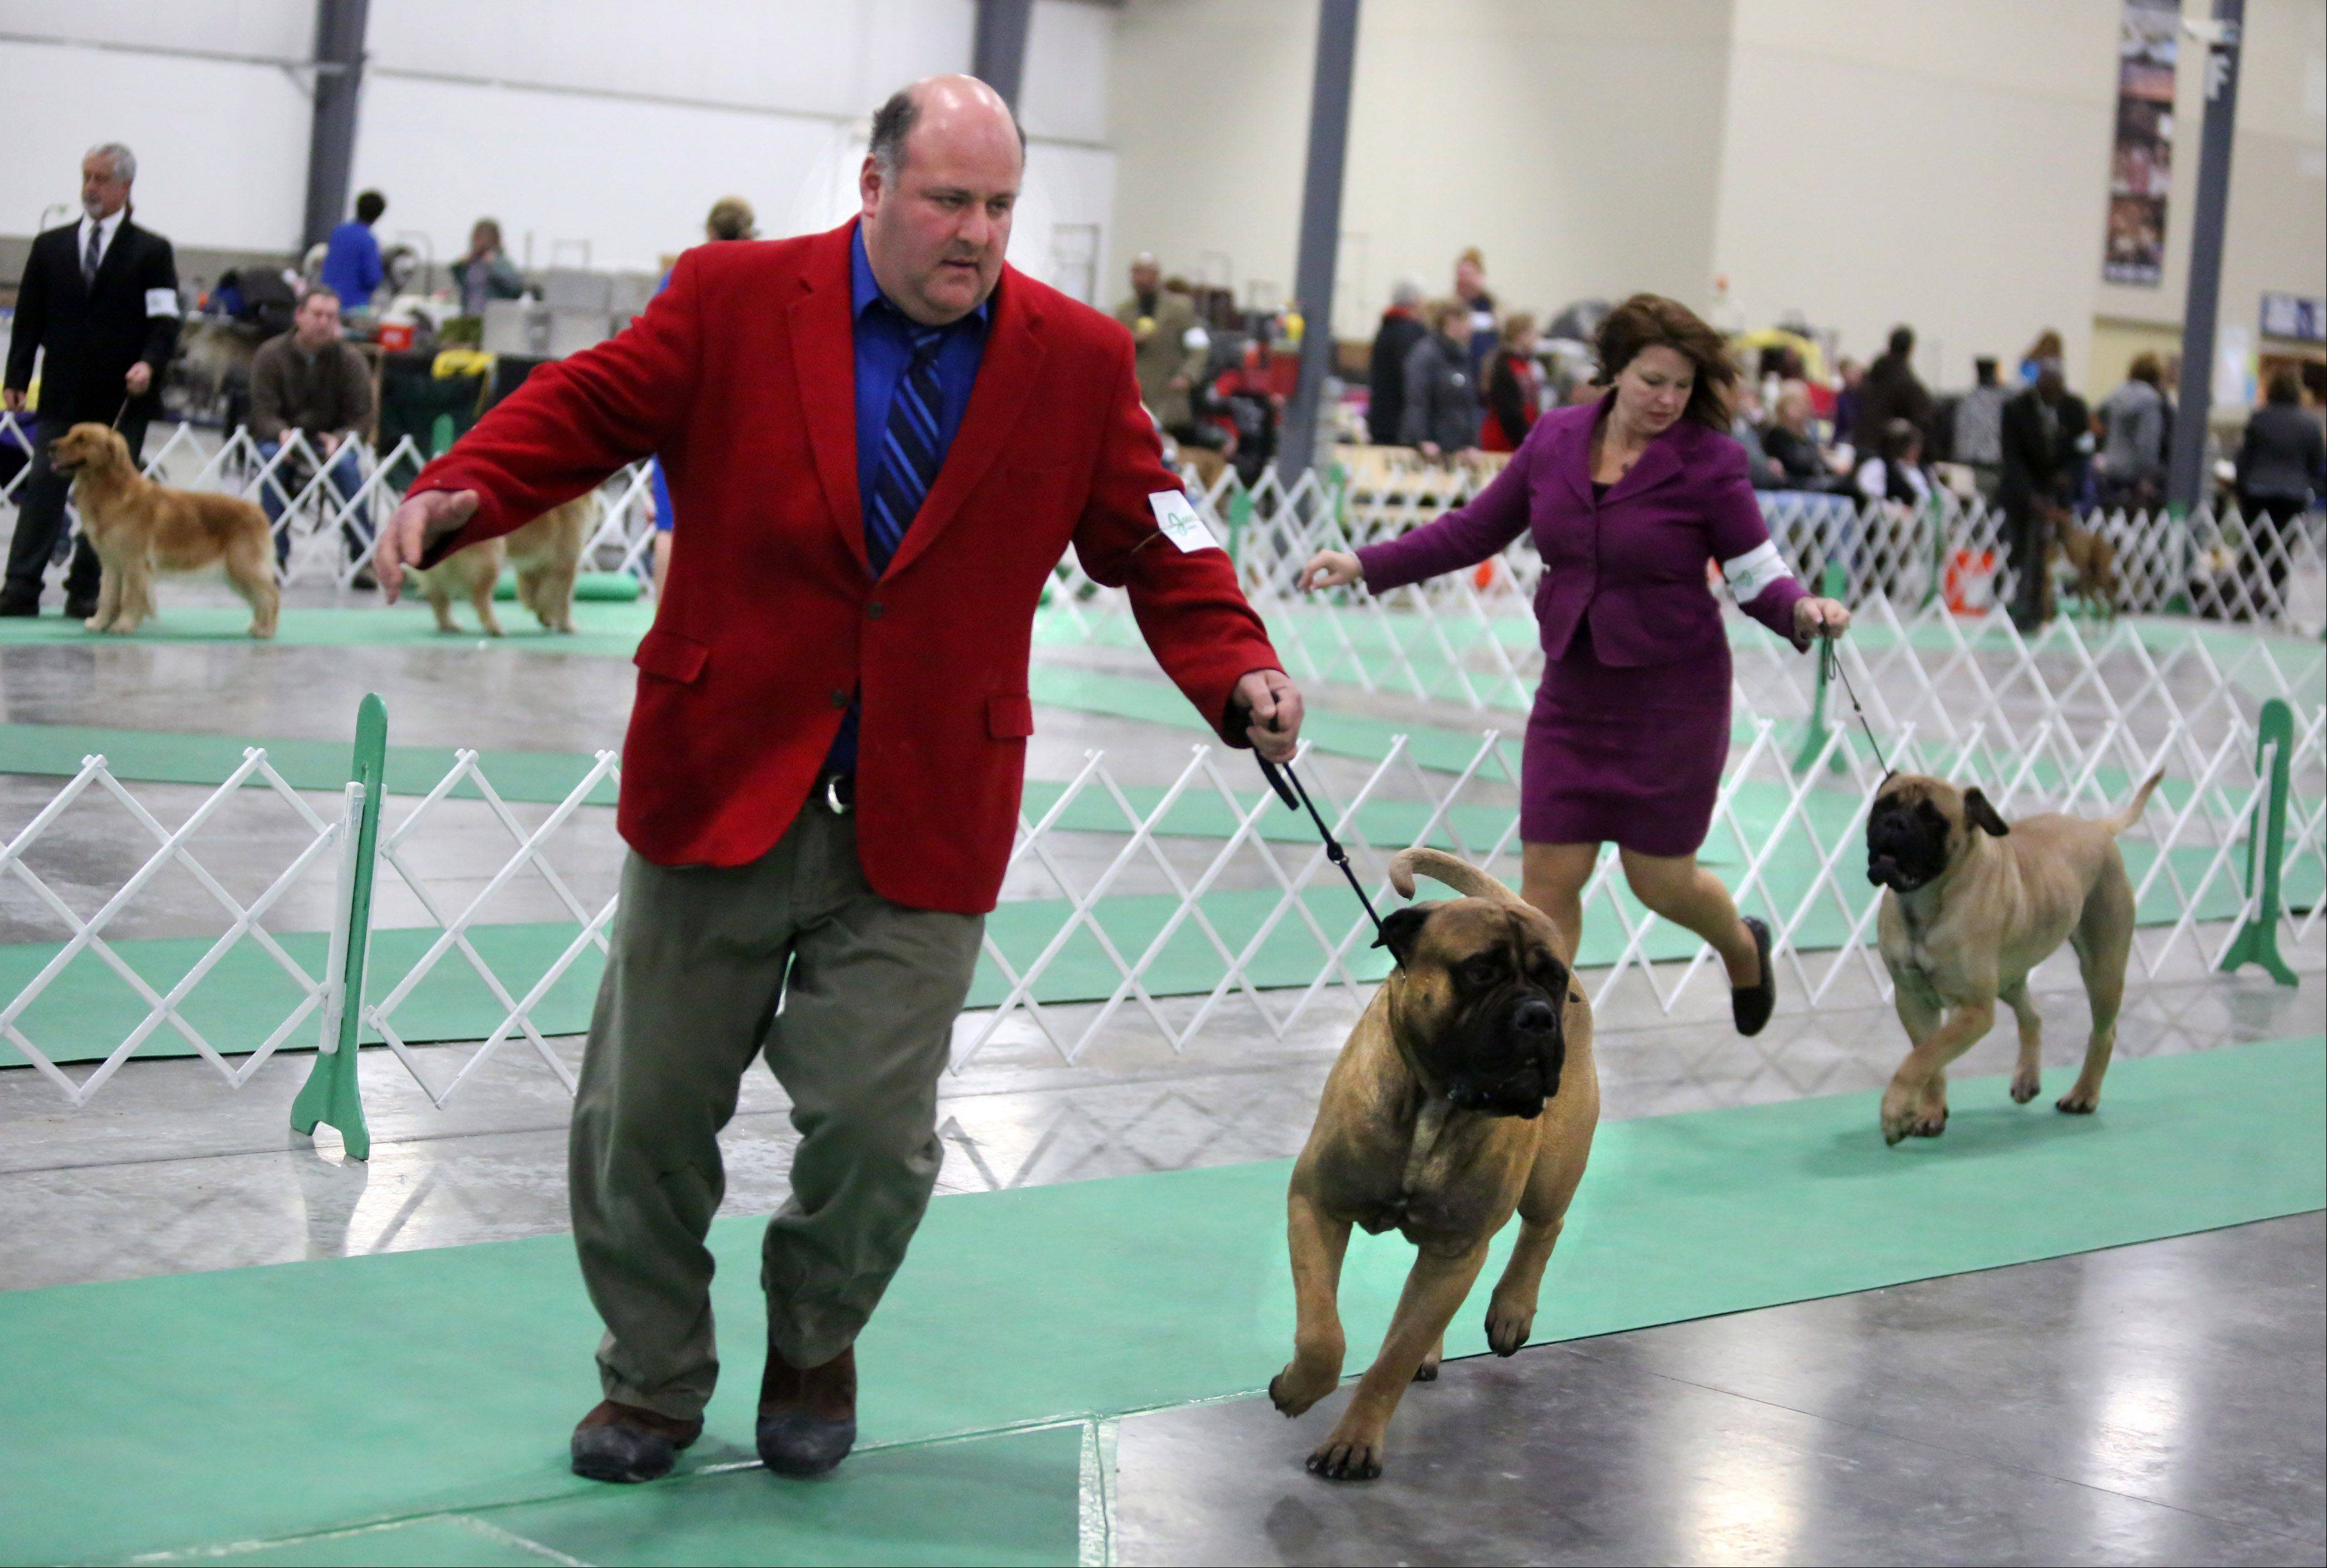 Handler Howard Gussis, a Grayslake native who recently moved to Wisconsin, shows Rugie, a bullmastif owned by Chris Davenport of Wildwood, at the Chain O� Lakes Kennel Club dog show on Sunday at the Lake County Fairgrounds in Grayslake. The show was part of a three-day event that drew more than 1,440 dogs representing 120 breeds.